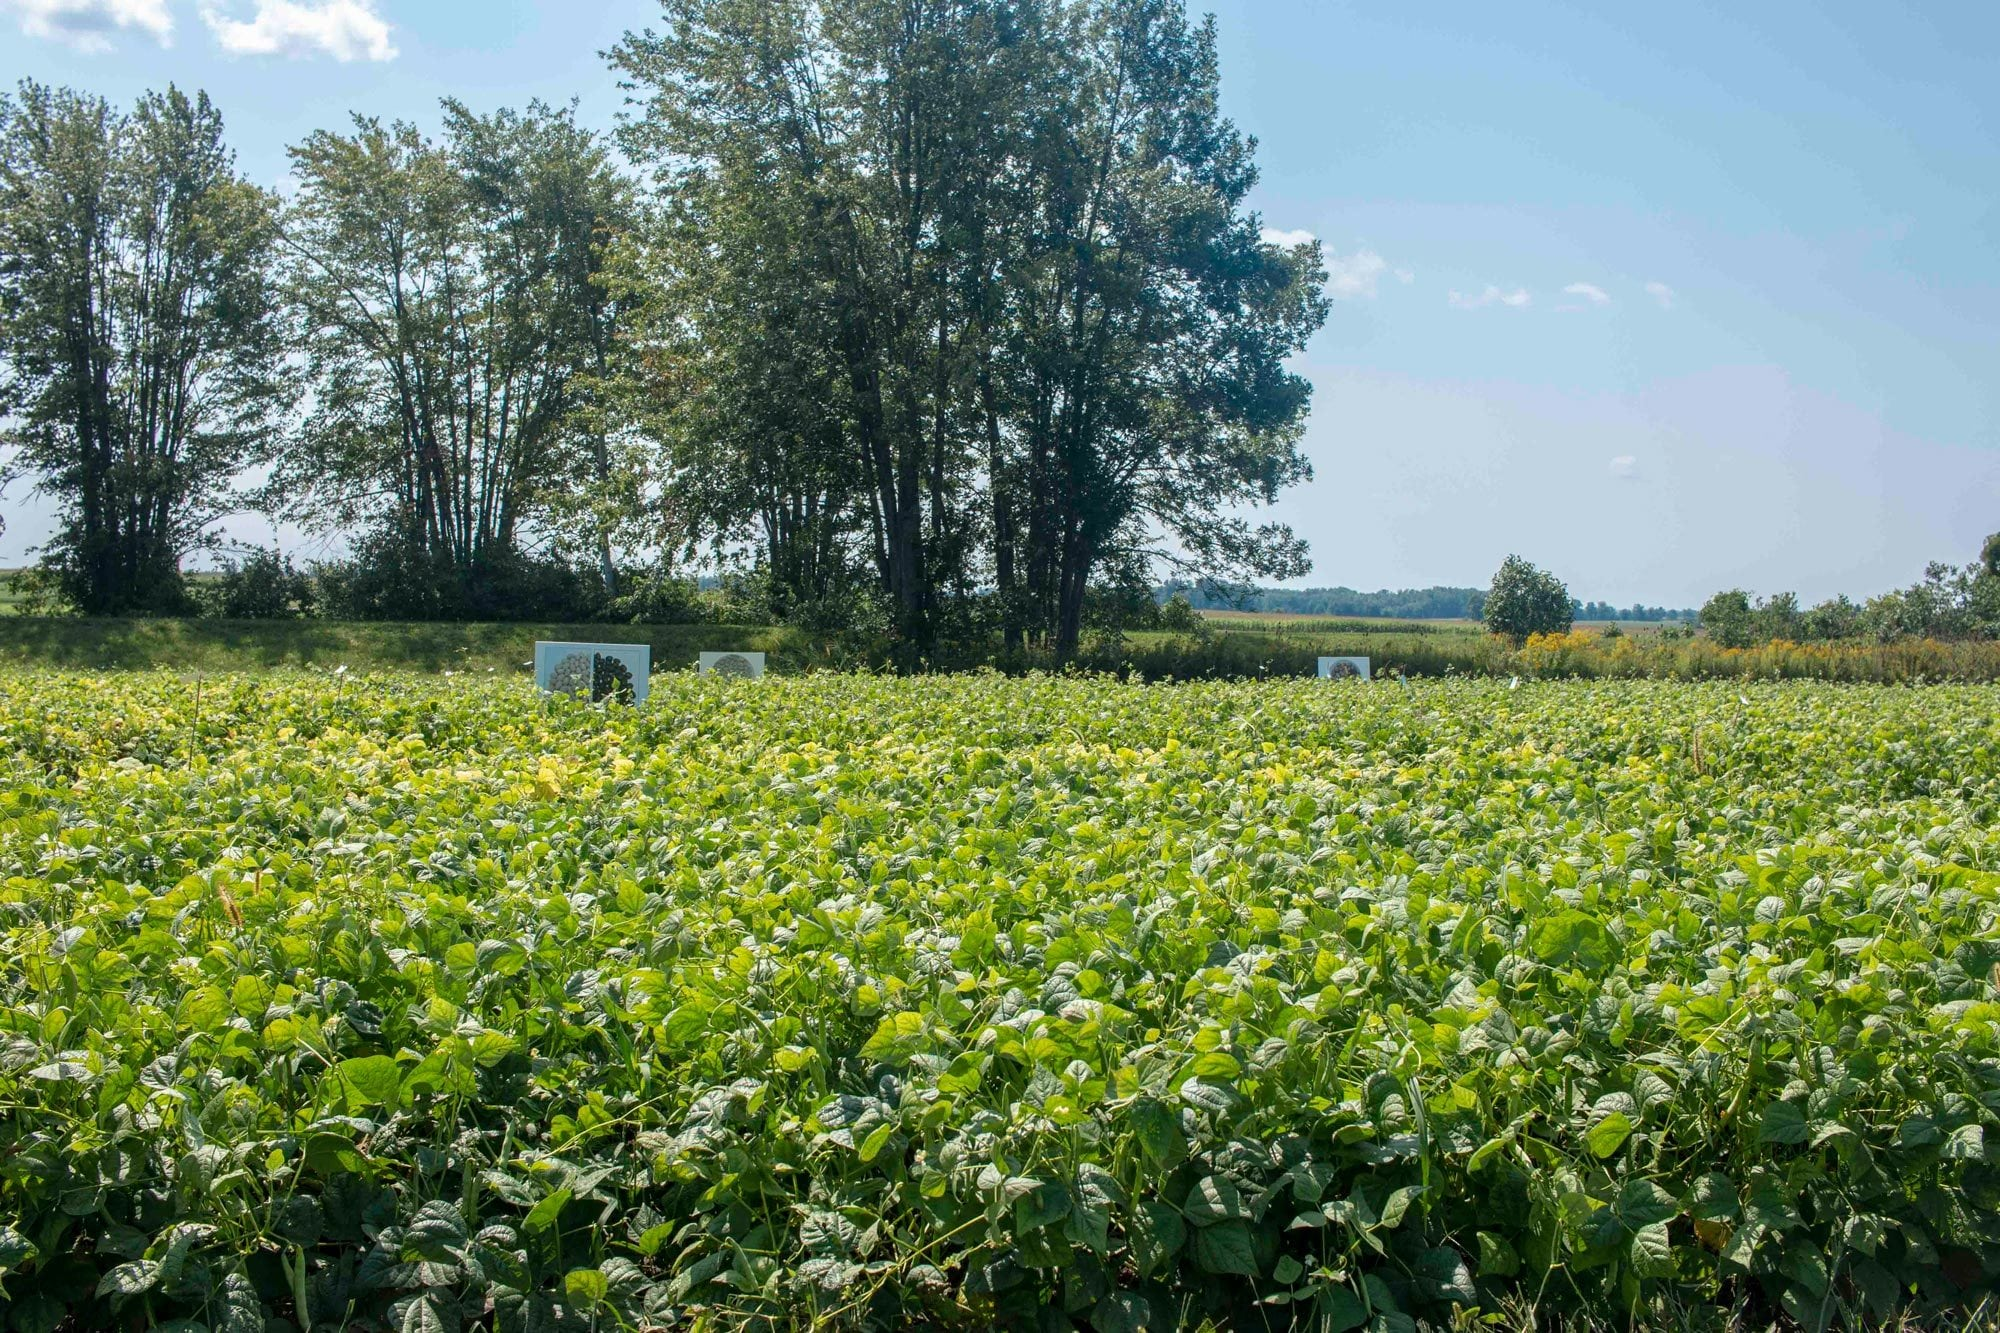 A research trial using bean variety mixtures to increase crop diversity and ecosystem services at Elora Research Station.